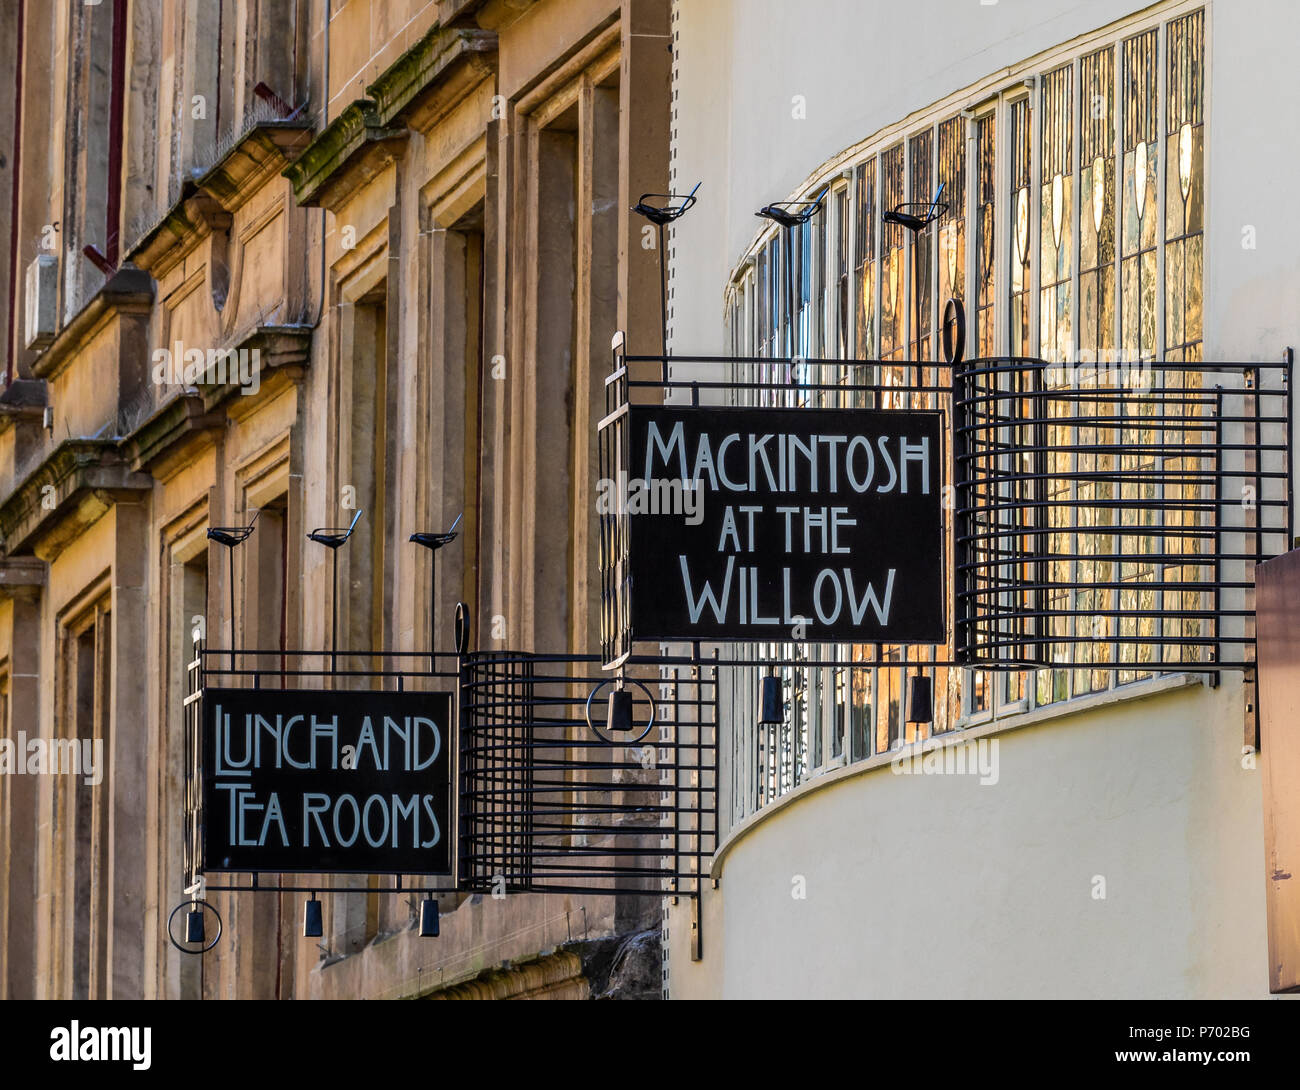 The  setting sun shinning on the Charles Rennie Mackintosh signs for the Willow Tearoom on Sauchiehall Street in Glasgow, Scotland - Stock Image